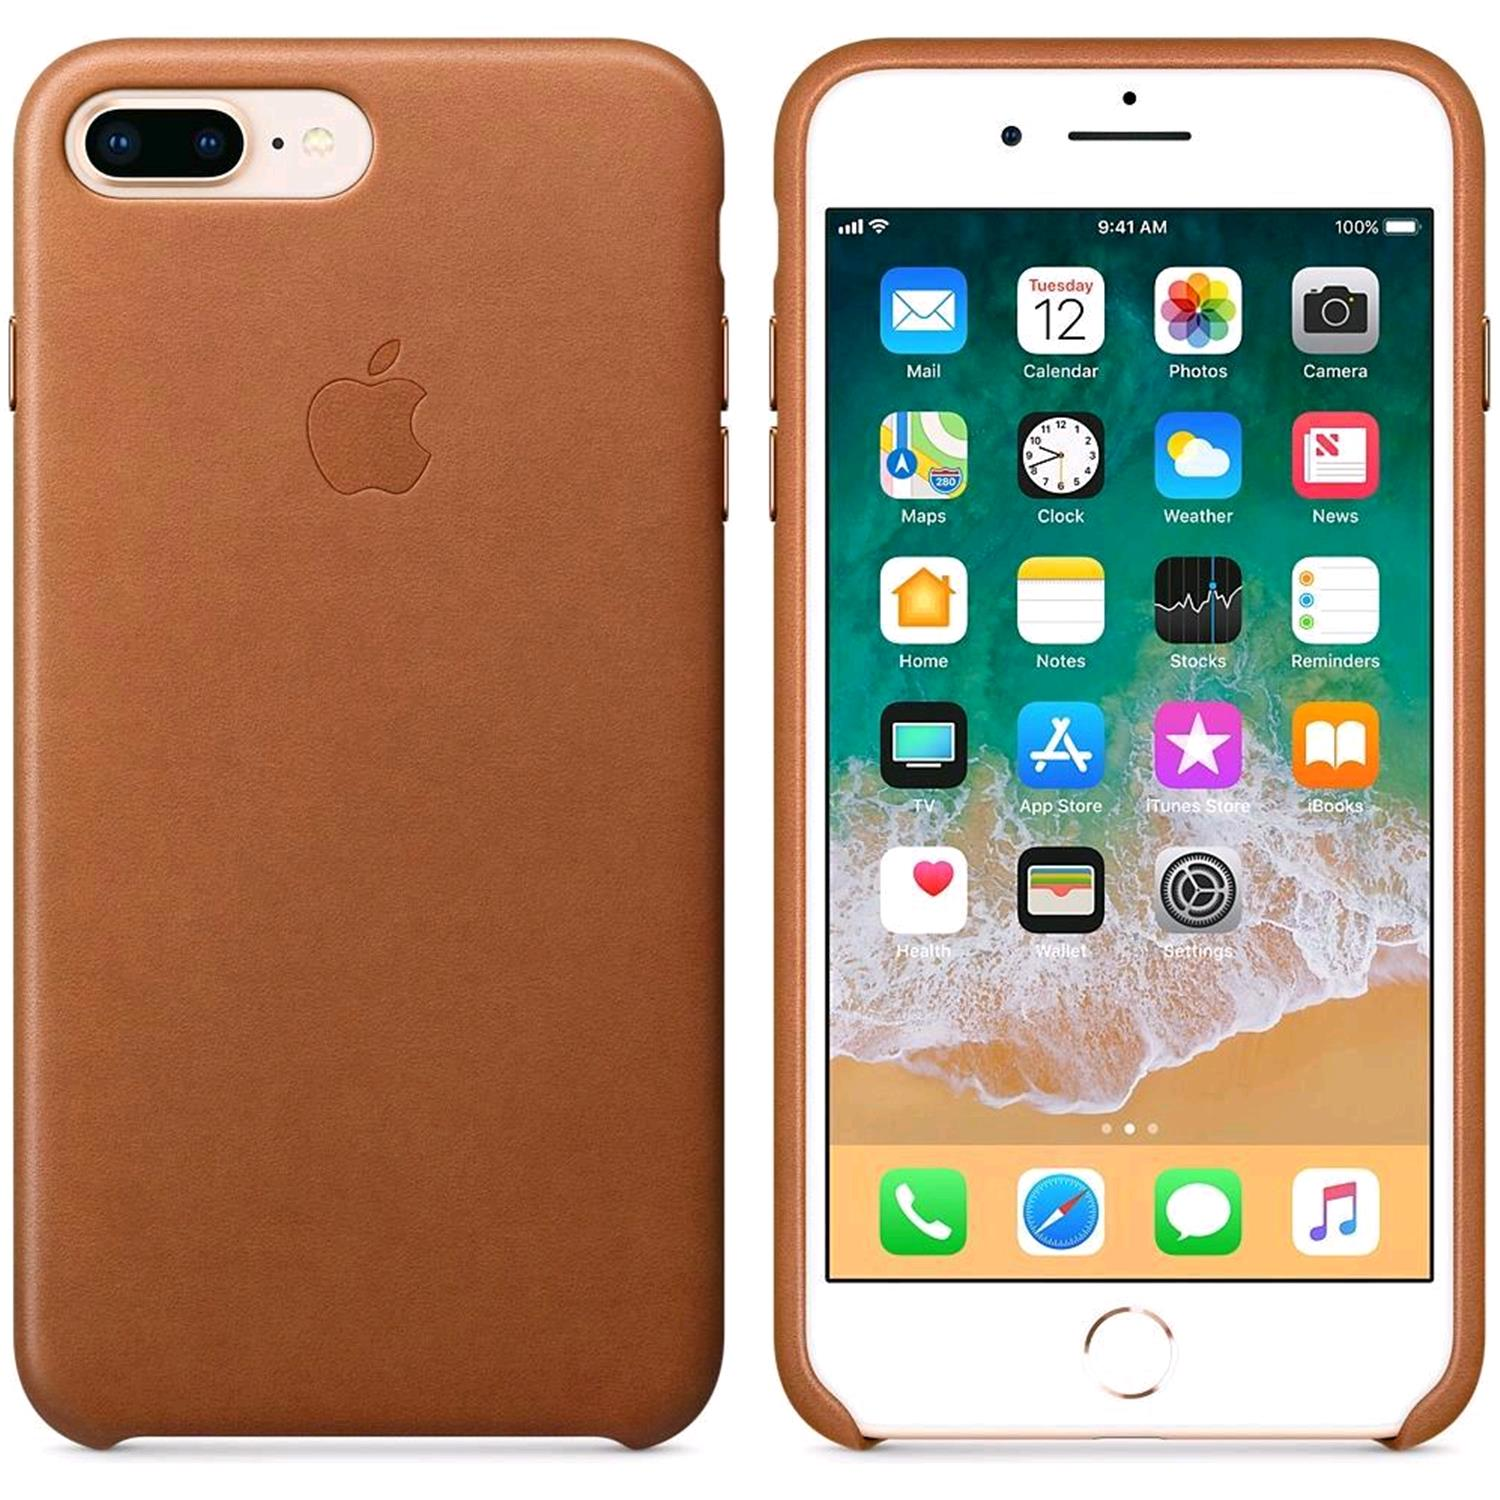 belle et charmante rechercher l'original répliques APPLE iPHONE 8 PLUS / 7 PLUS COVER ORIGINALE COLORE MARRONE